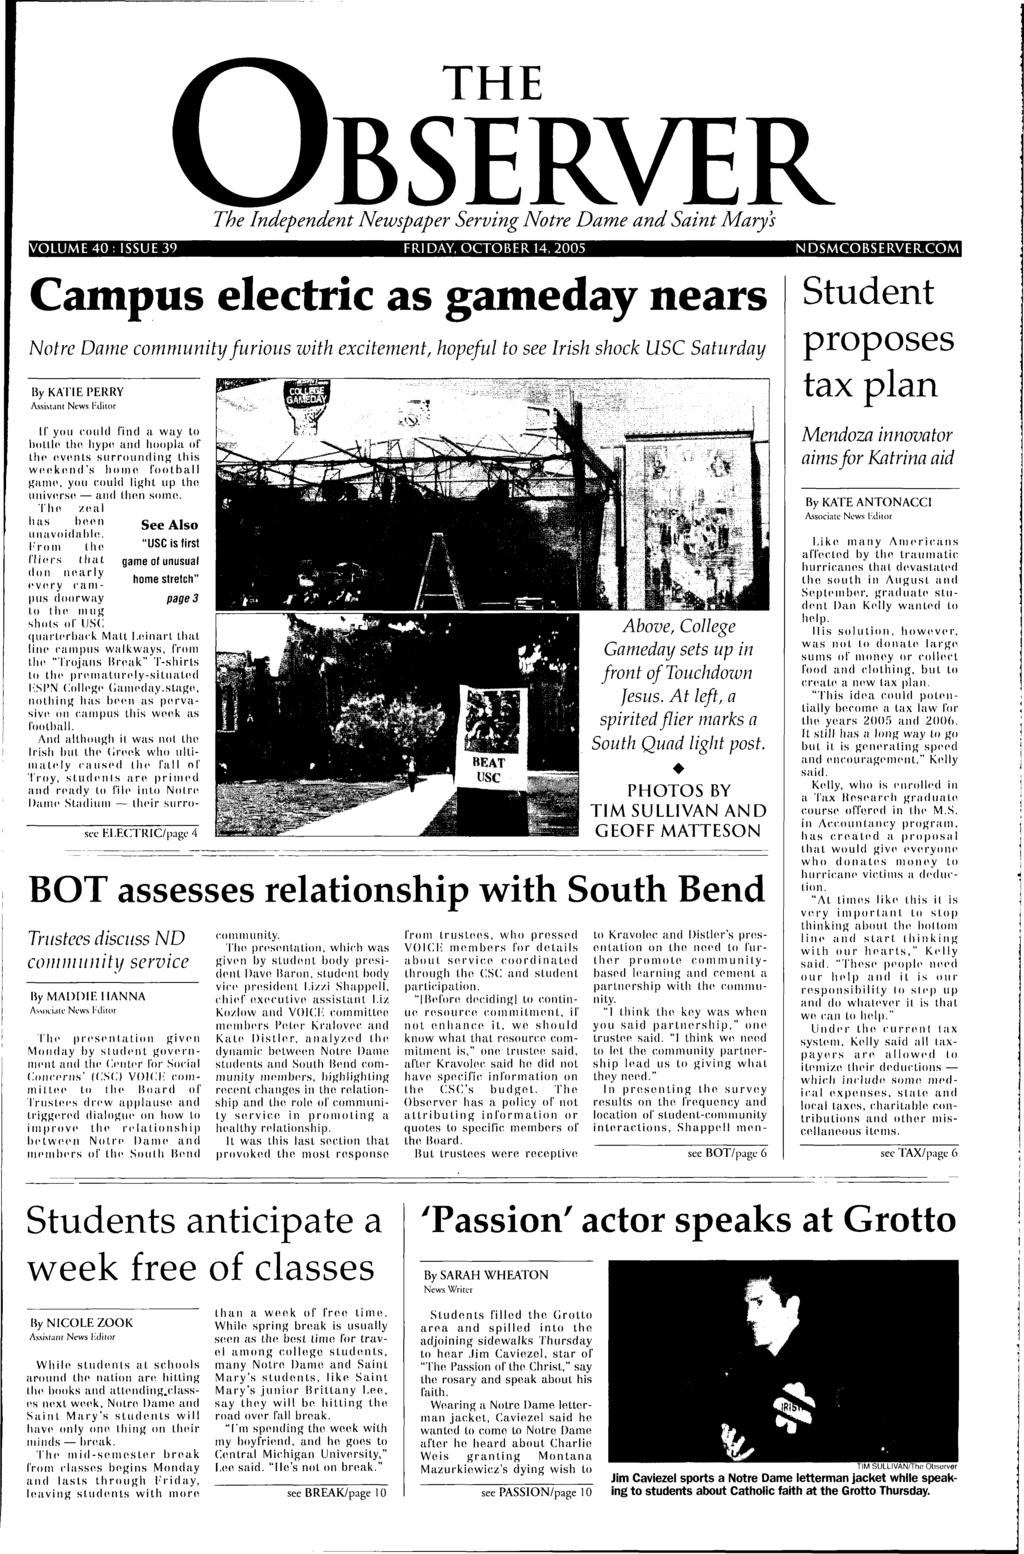 9a6ae5e1b890e6 THE The Independent Newspaper Serving Notre Dame and Saint Mary's OLUME 40:  ISSUE 39 FRIDAY